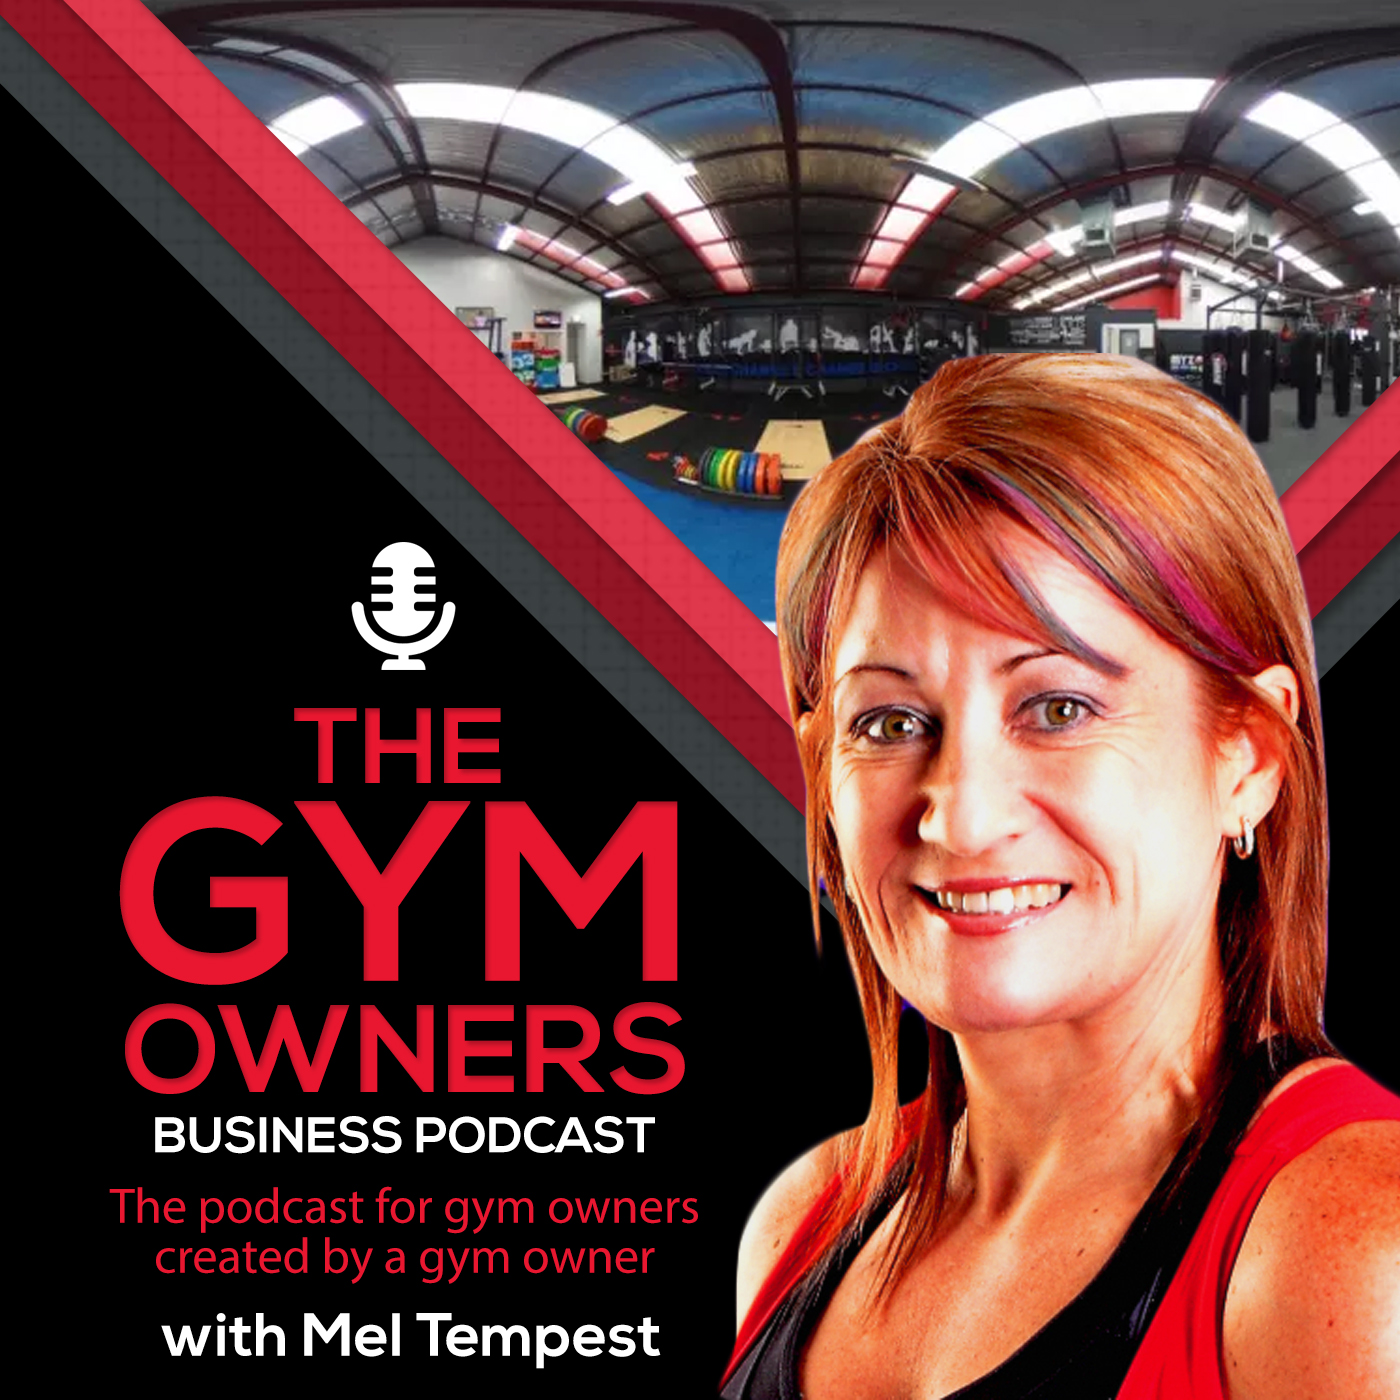 The Gym Owners Business Podcast